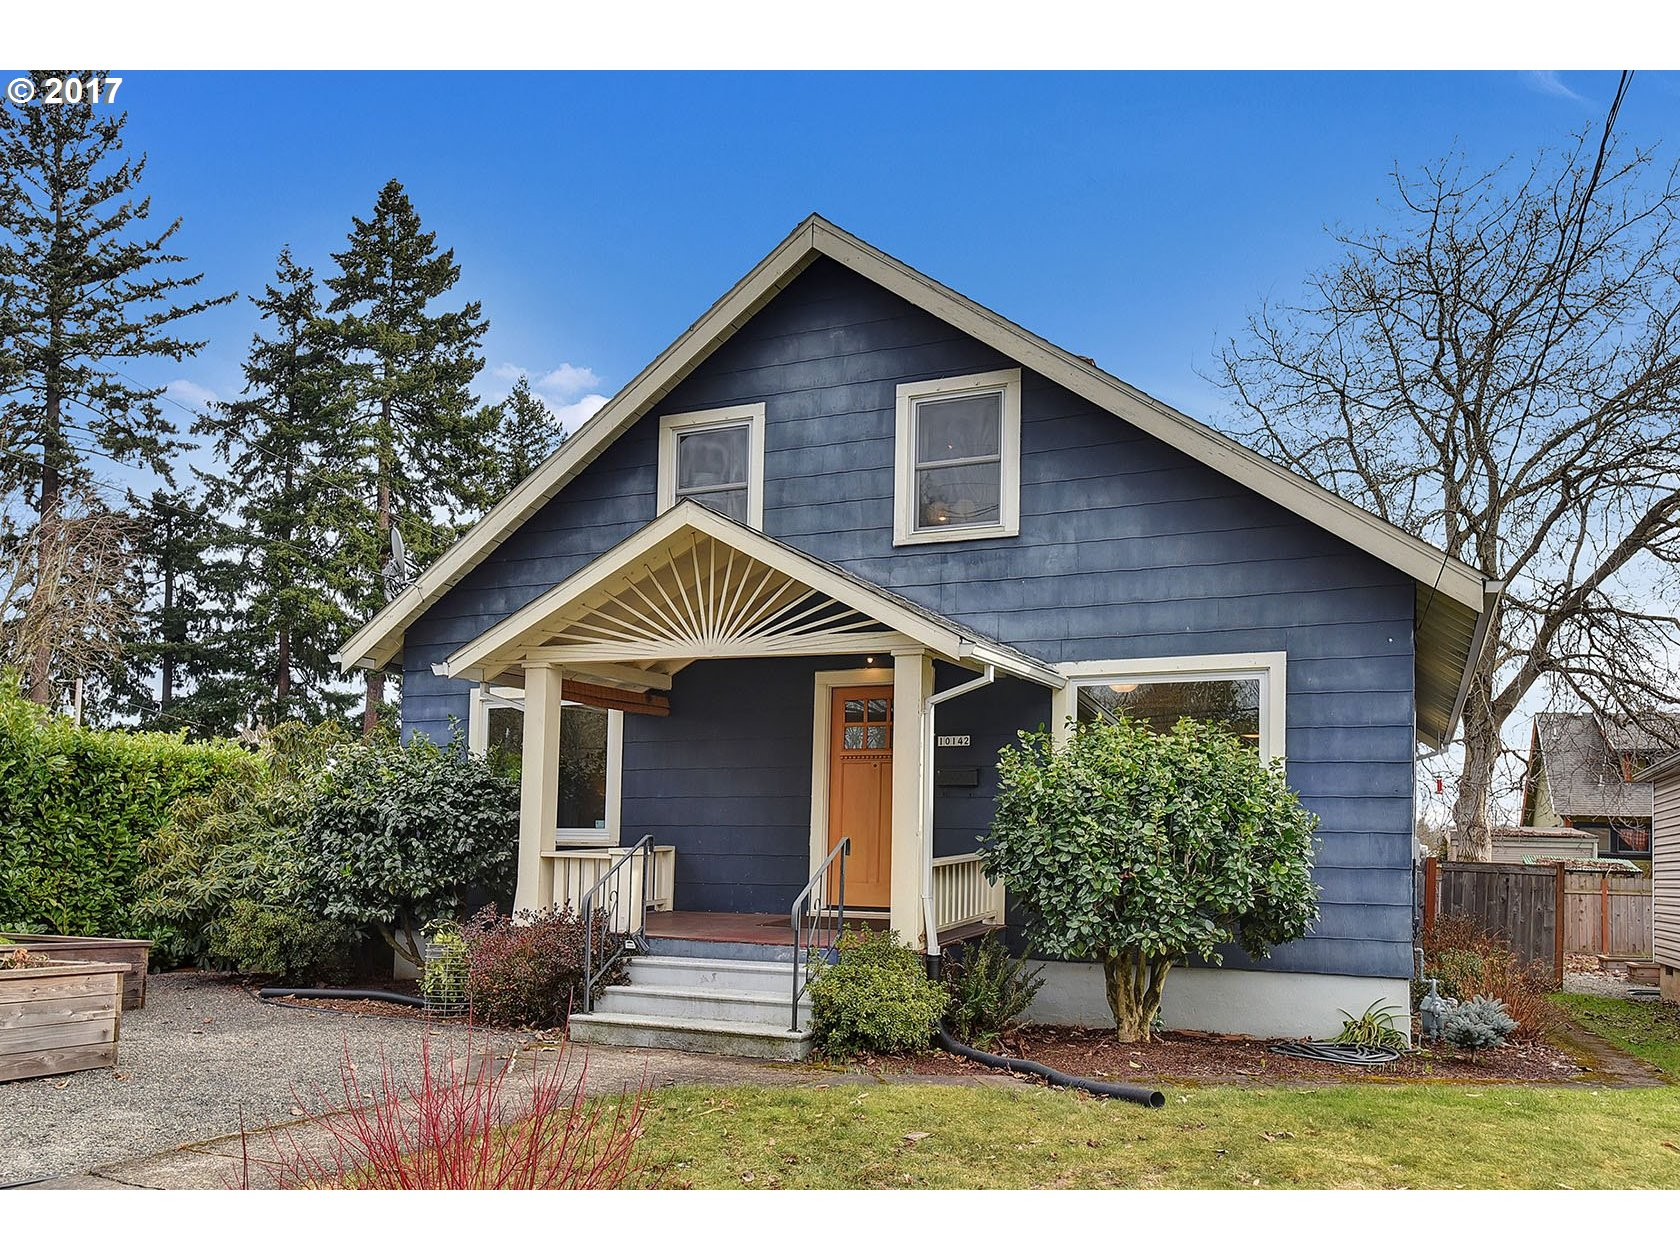 2560 sq. ft 3 bedrooms 2 bathrooms  House For Sale, Portland, OR